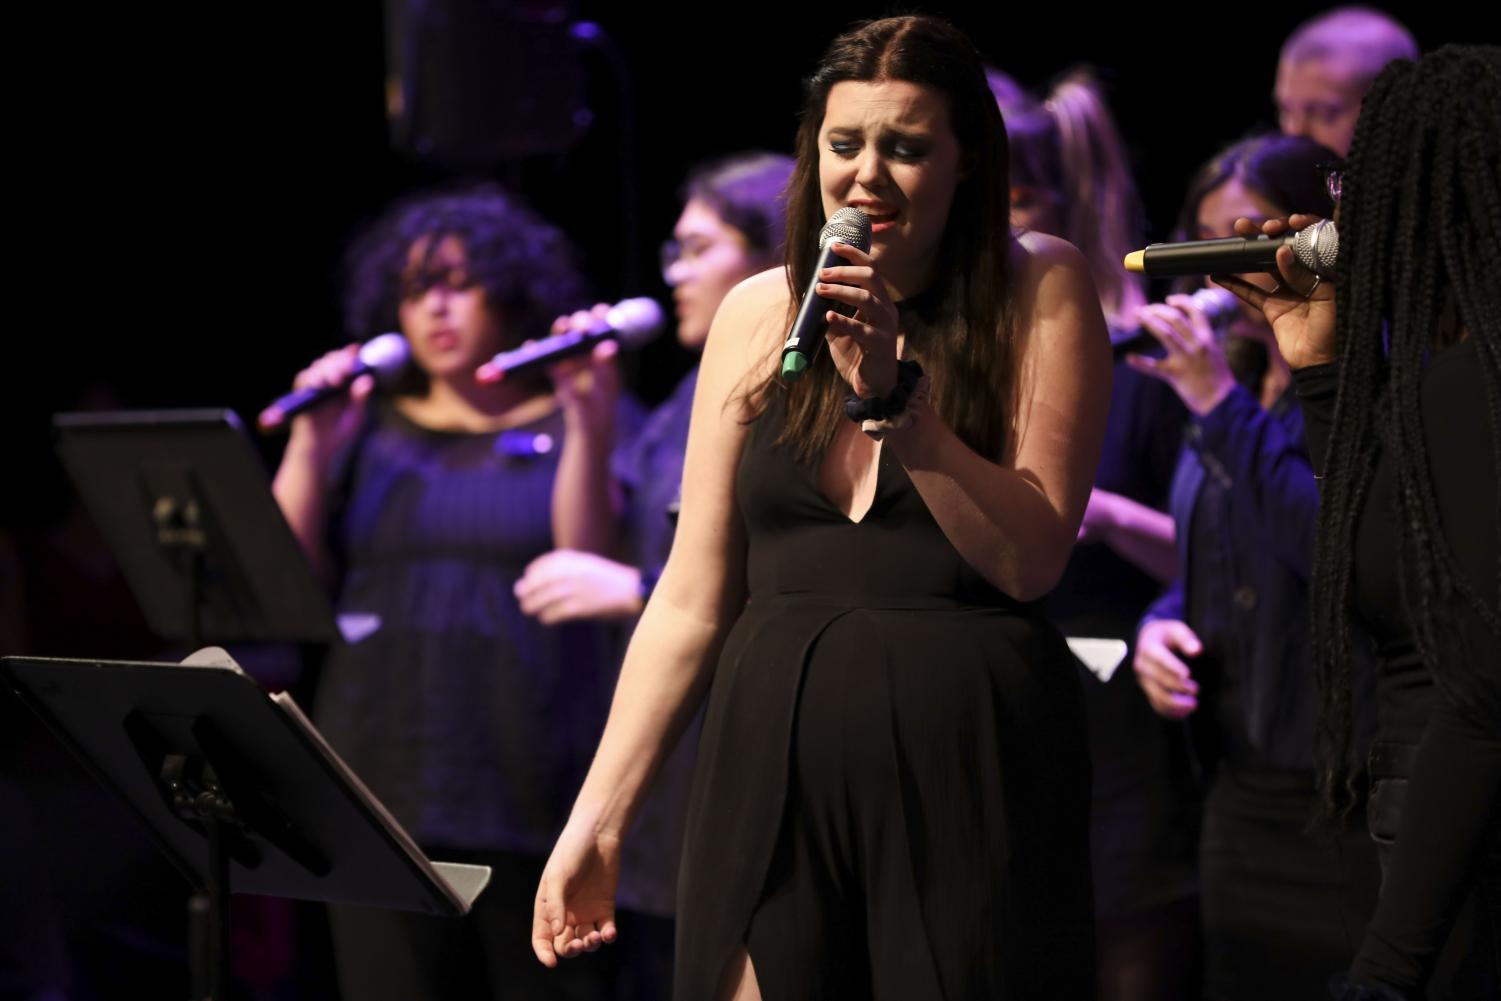 Rachel Nelson, a music major, sings a high note during the Sound Check event at Moorpark College on Oct.  18. Nelson sang lead for multiple songs and arranged the adaptation of